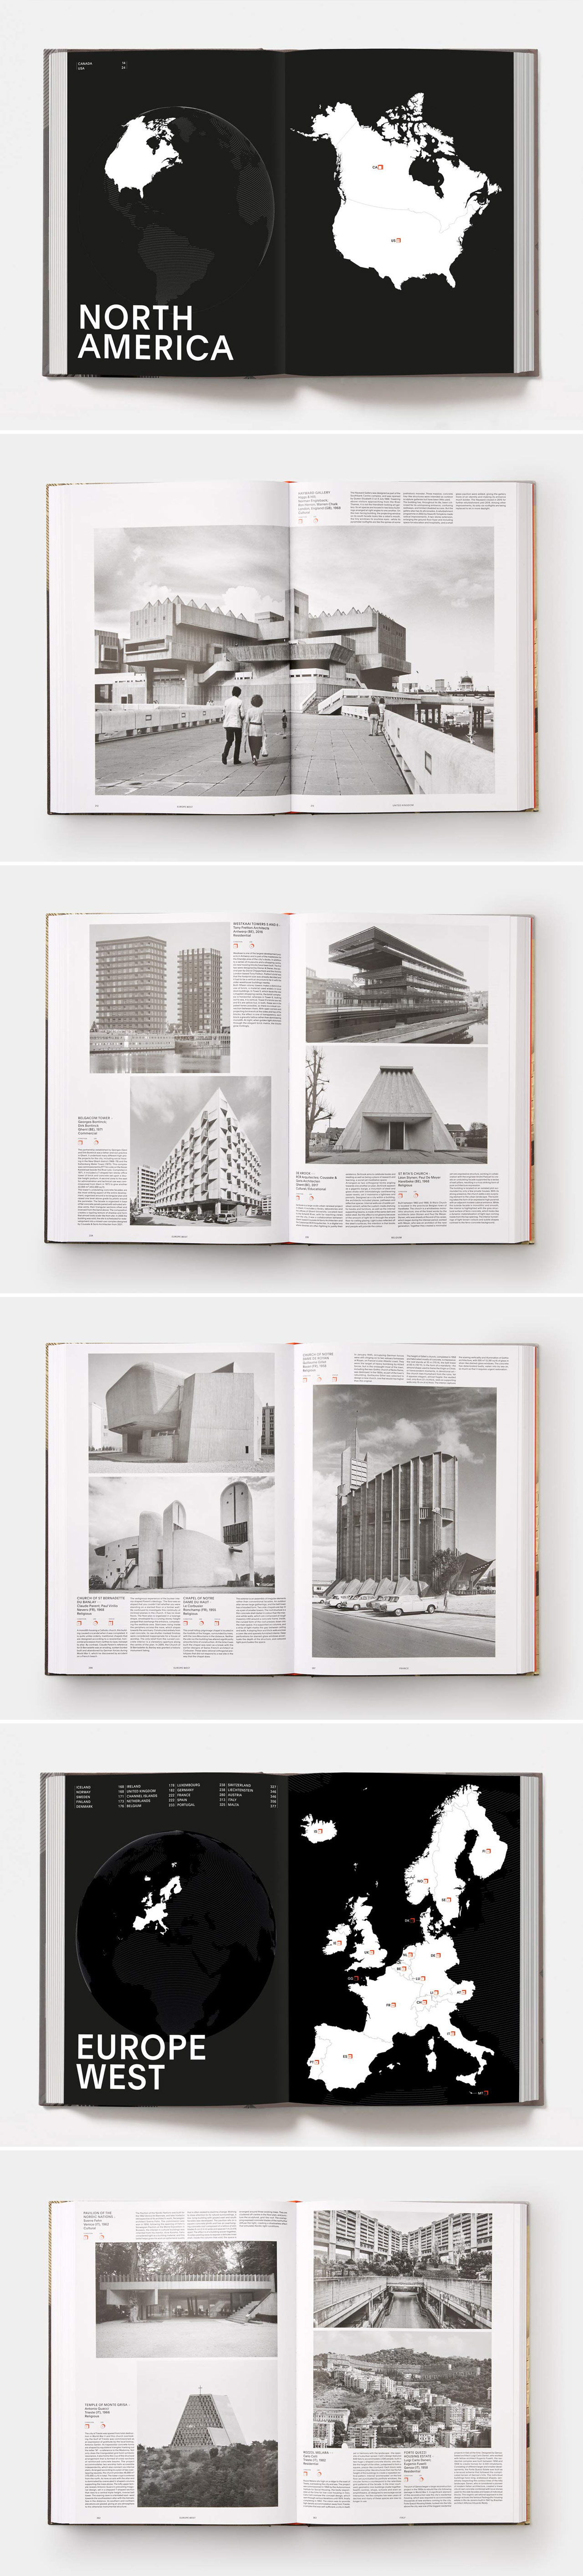 Atlas of Brutalist Architecture: New York Times Best Art Book of 2018